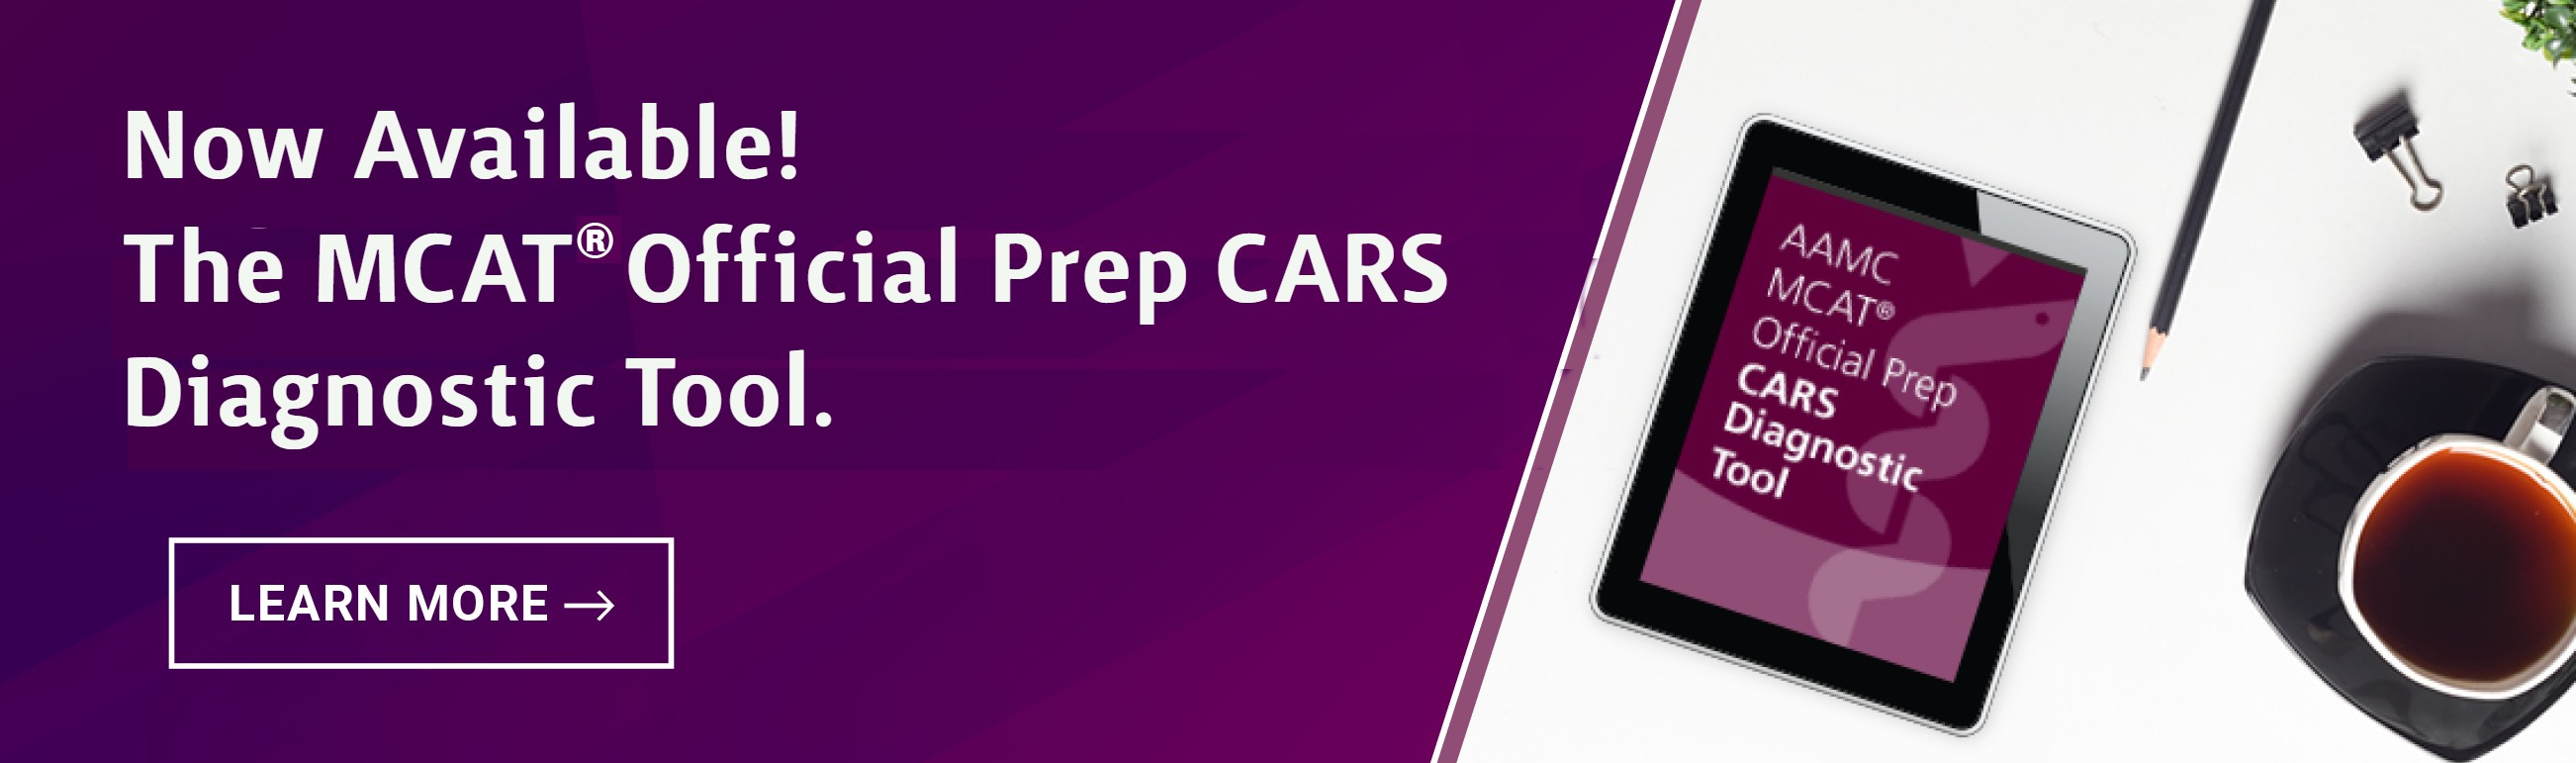 CARS product available for MCAT